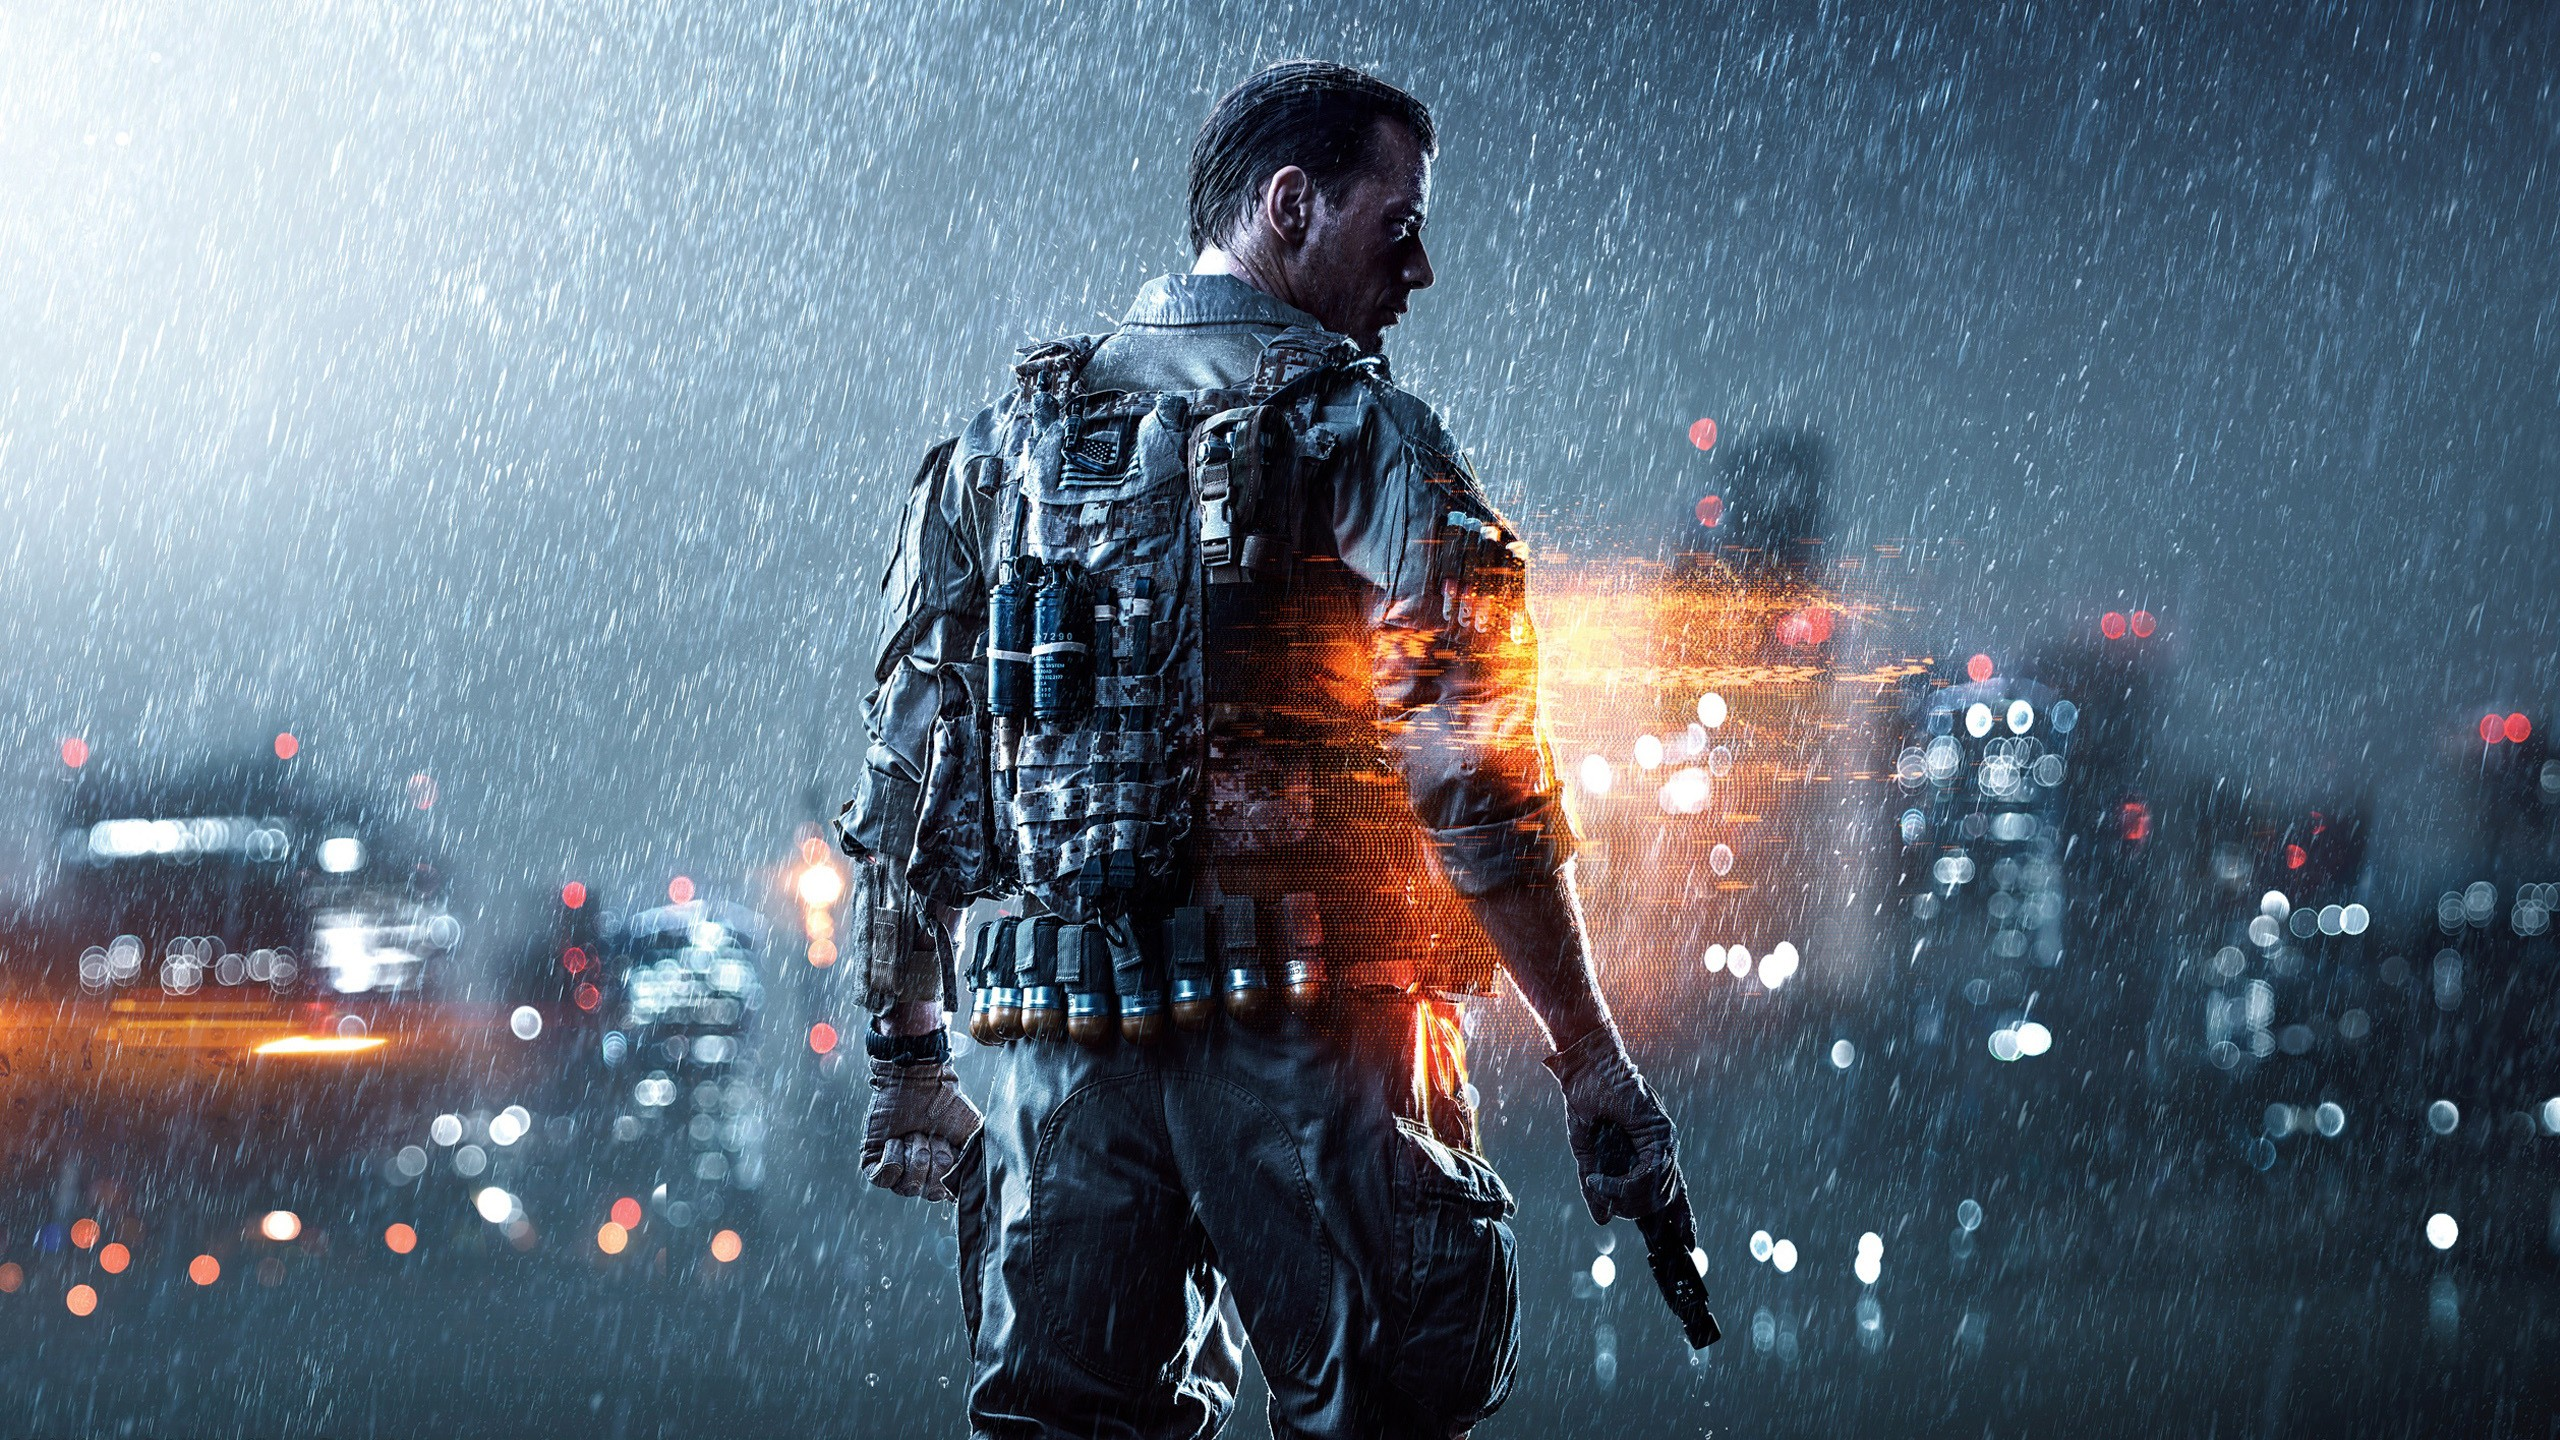 Normal Girl Wallpaper Battlefield 4 Game Wallpapers Hd Wallpapers Id 12913